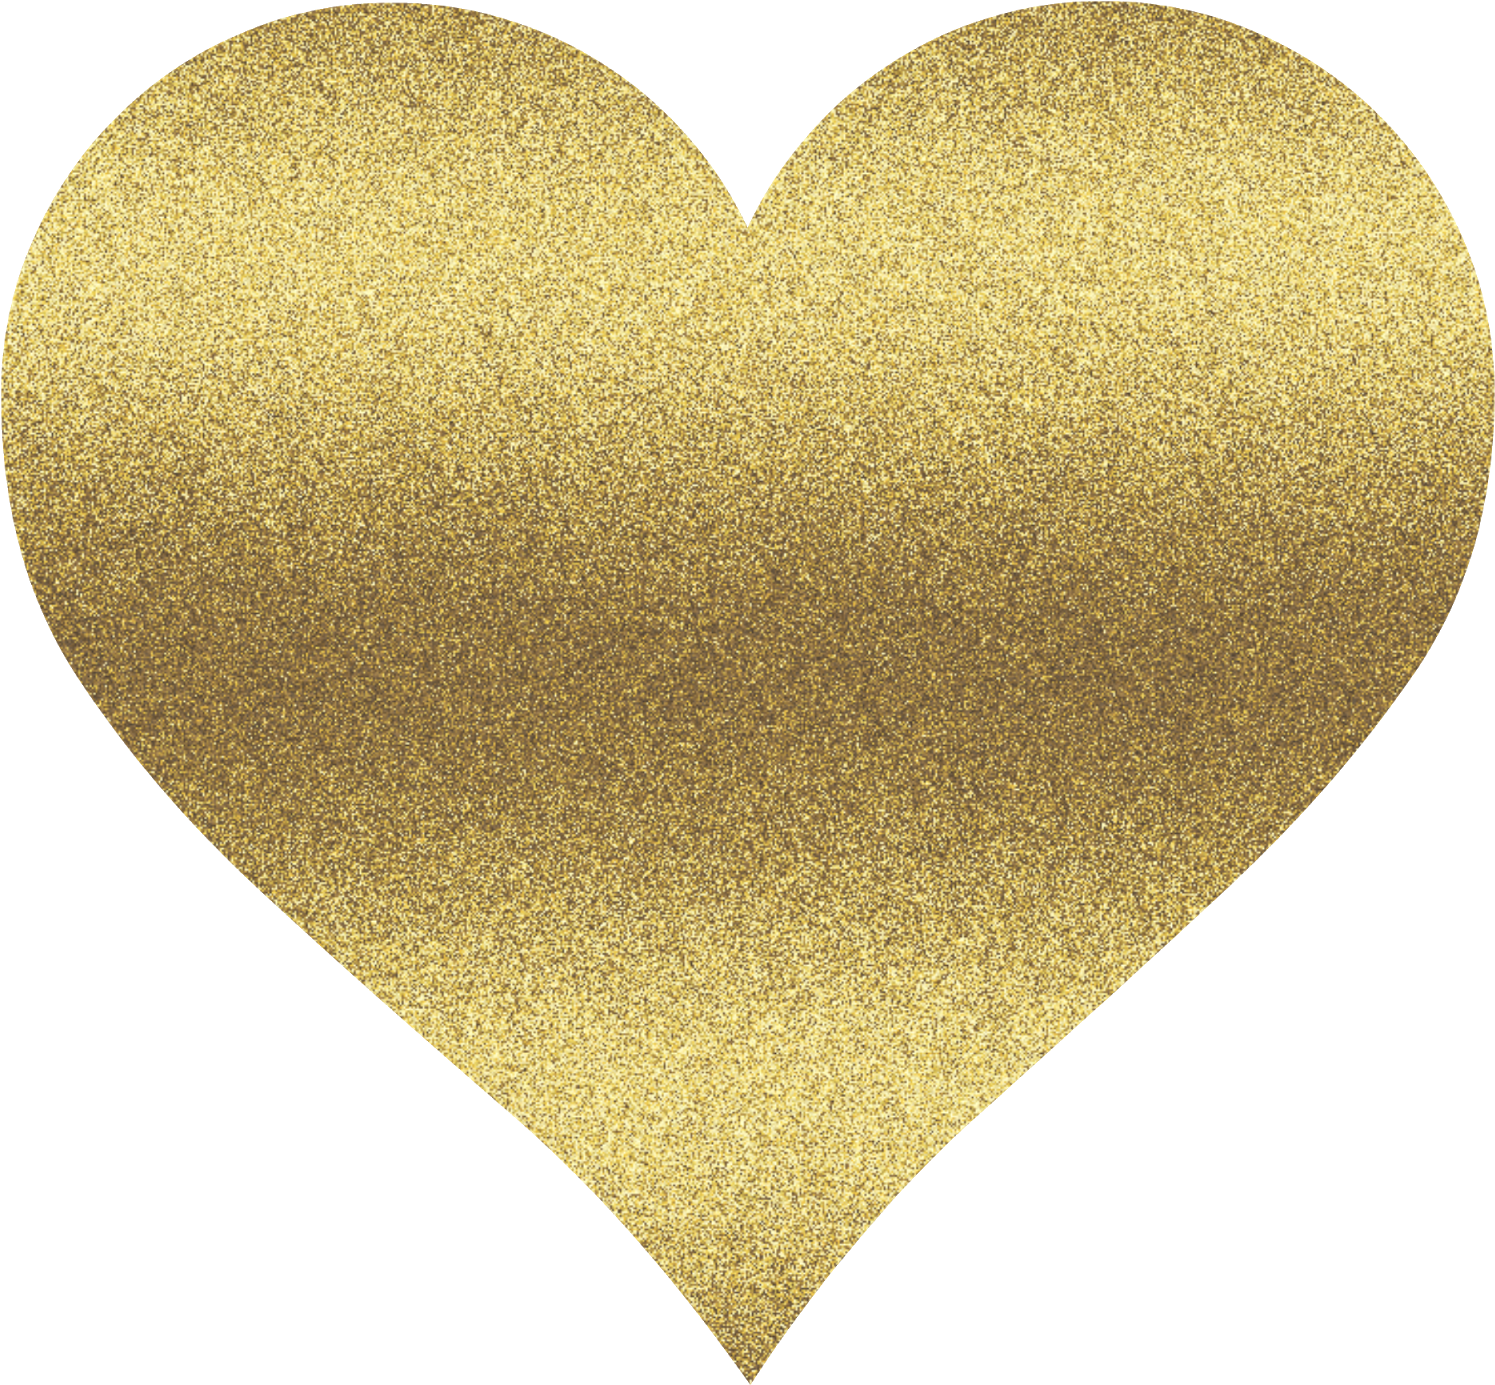 Alphabet Collection In Golden Color: Glitter Clipart Golden Glitter, Glitter Golden Glitter